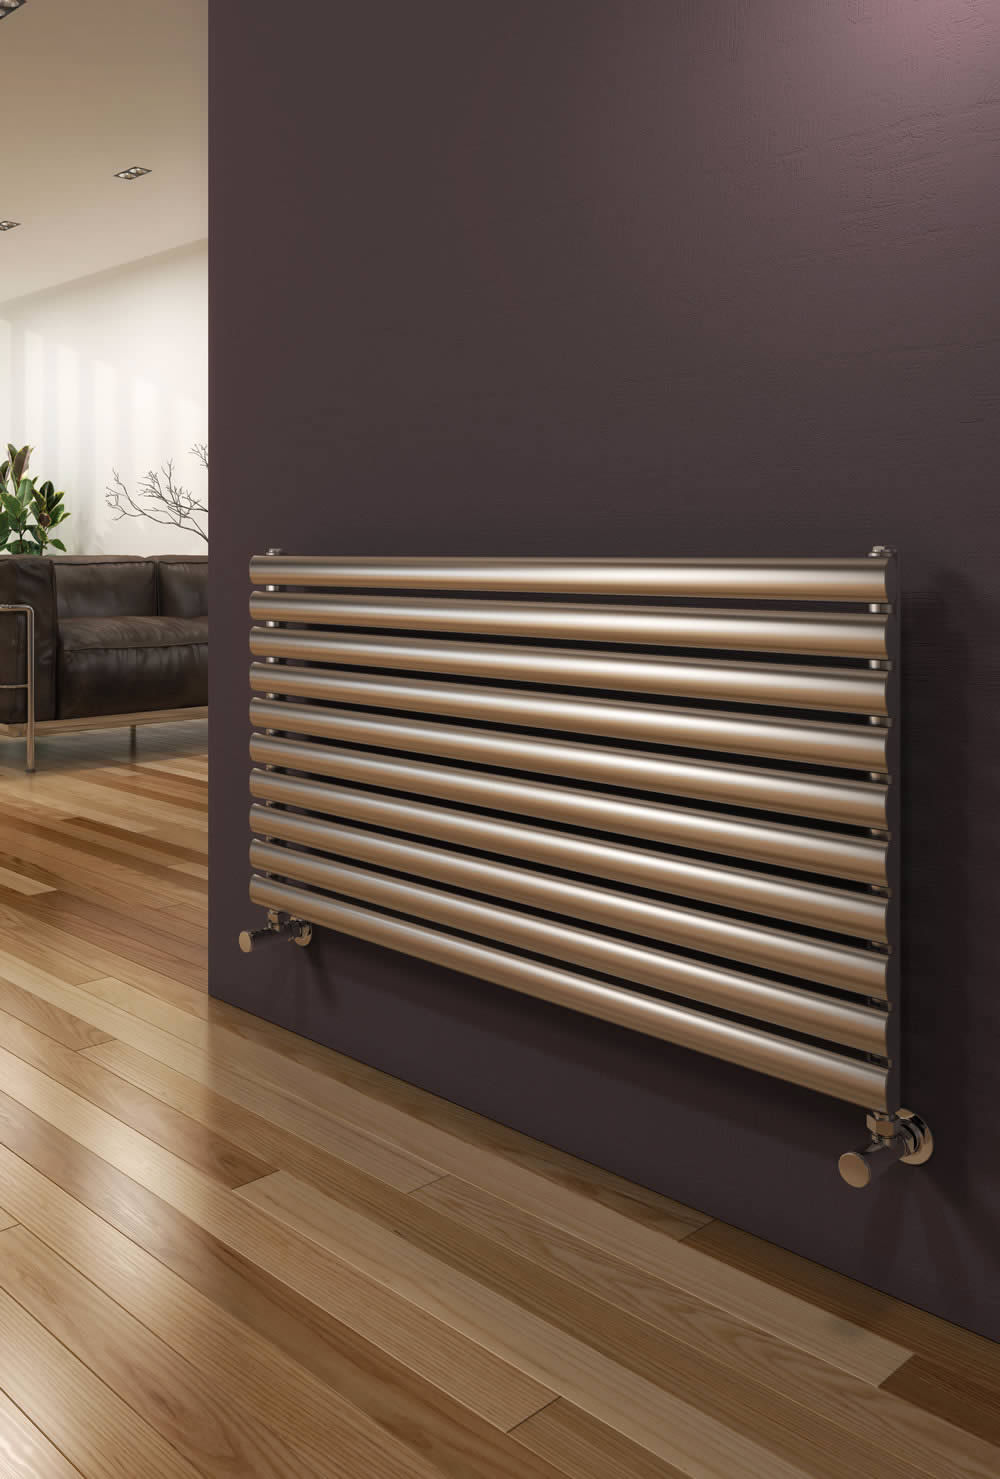 ARTENA 590 x 1000 BRUSHED DBL STAINLESS STEEL RAD